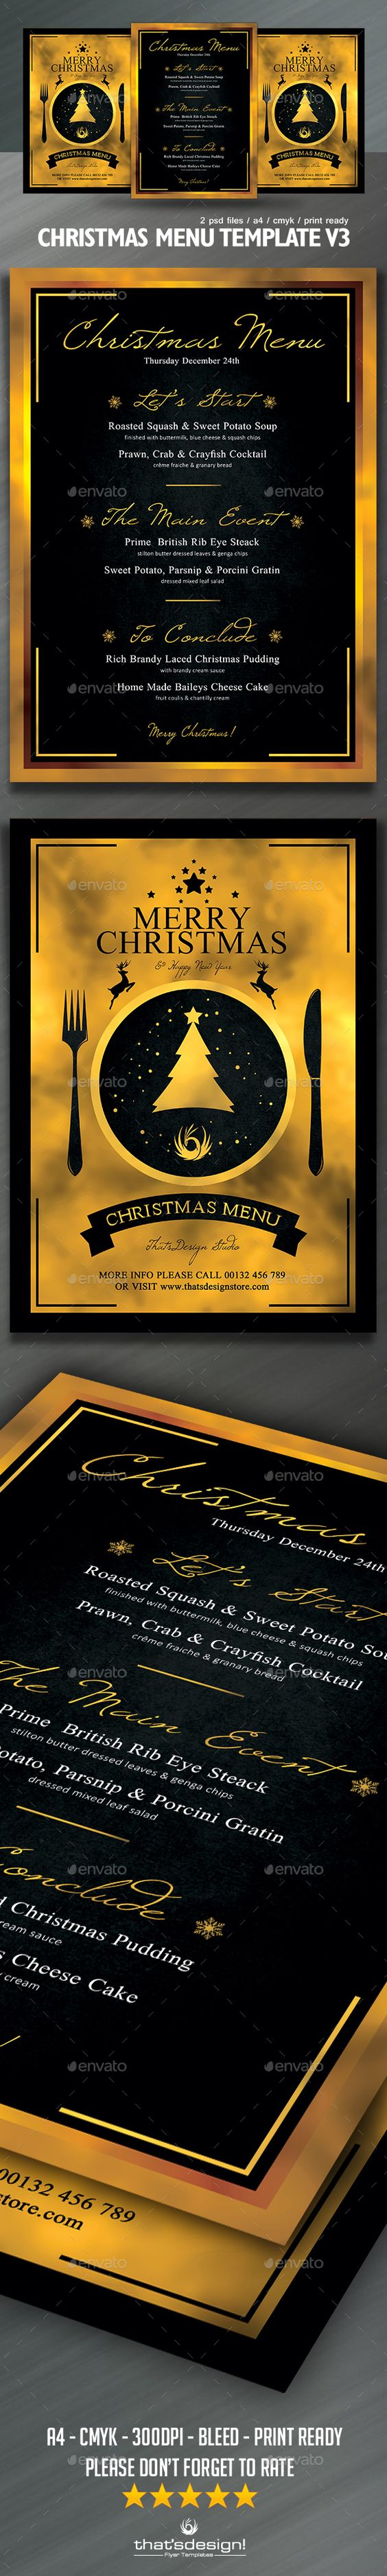 christmas menu template v flyer template restaurant and flyers christmas menu flyer template psd design graphicriver net